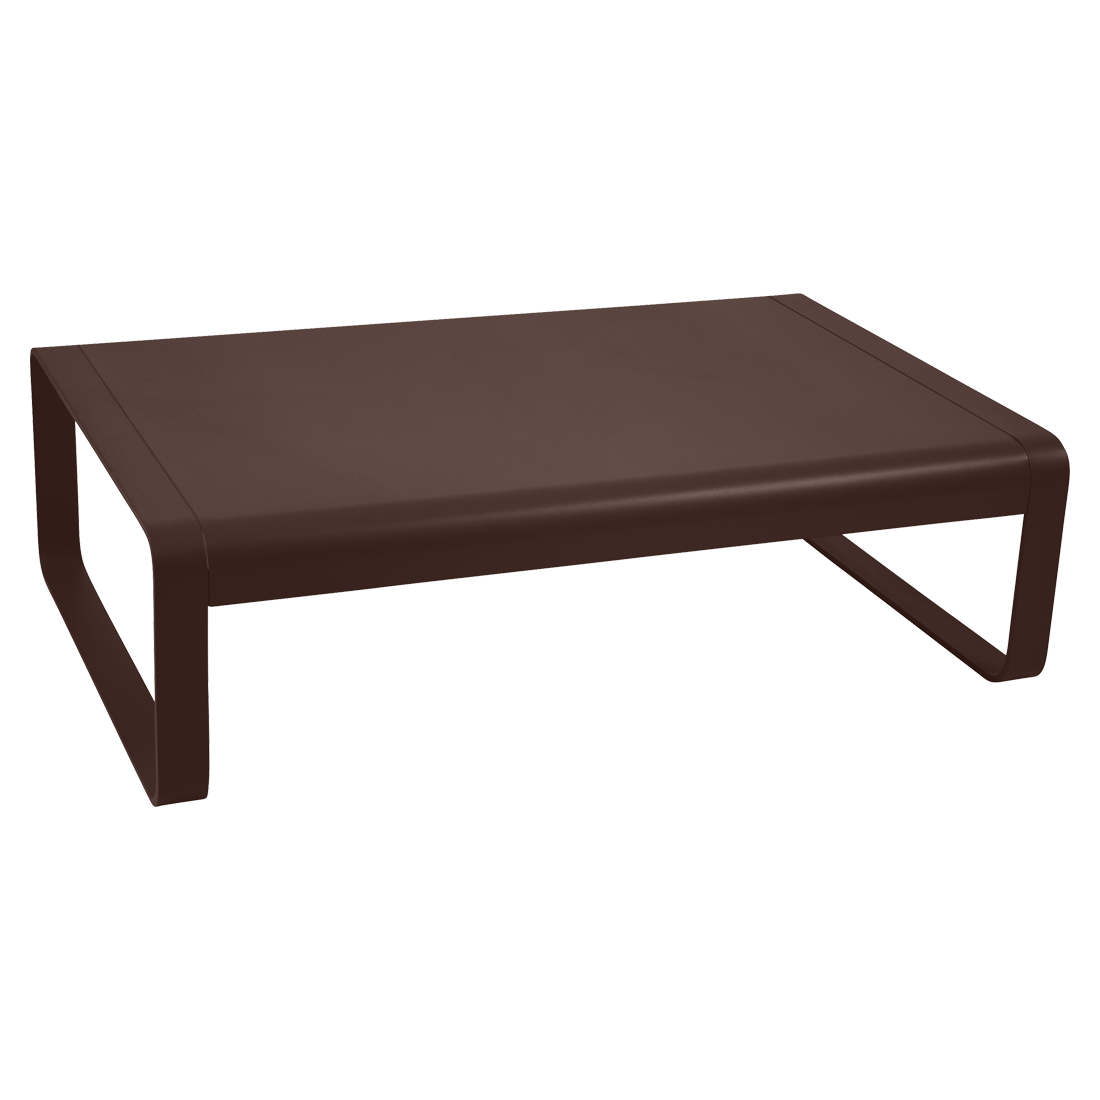 table basse metal, table basse de jardin, table basse marron